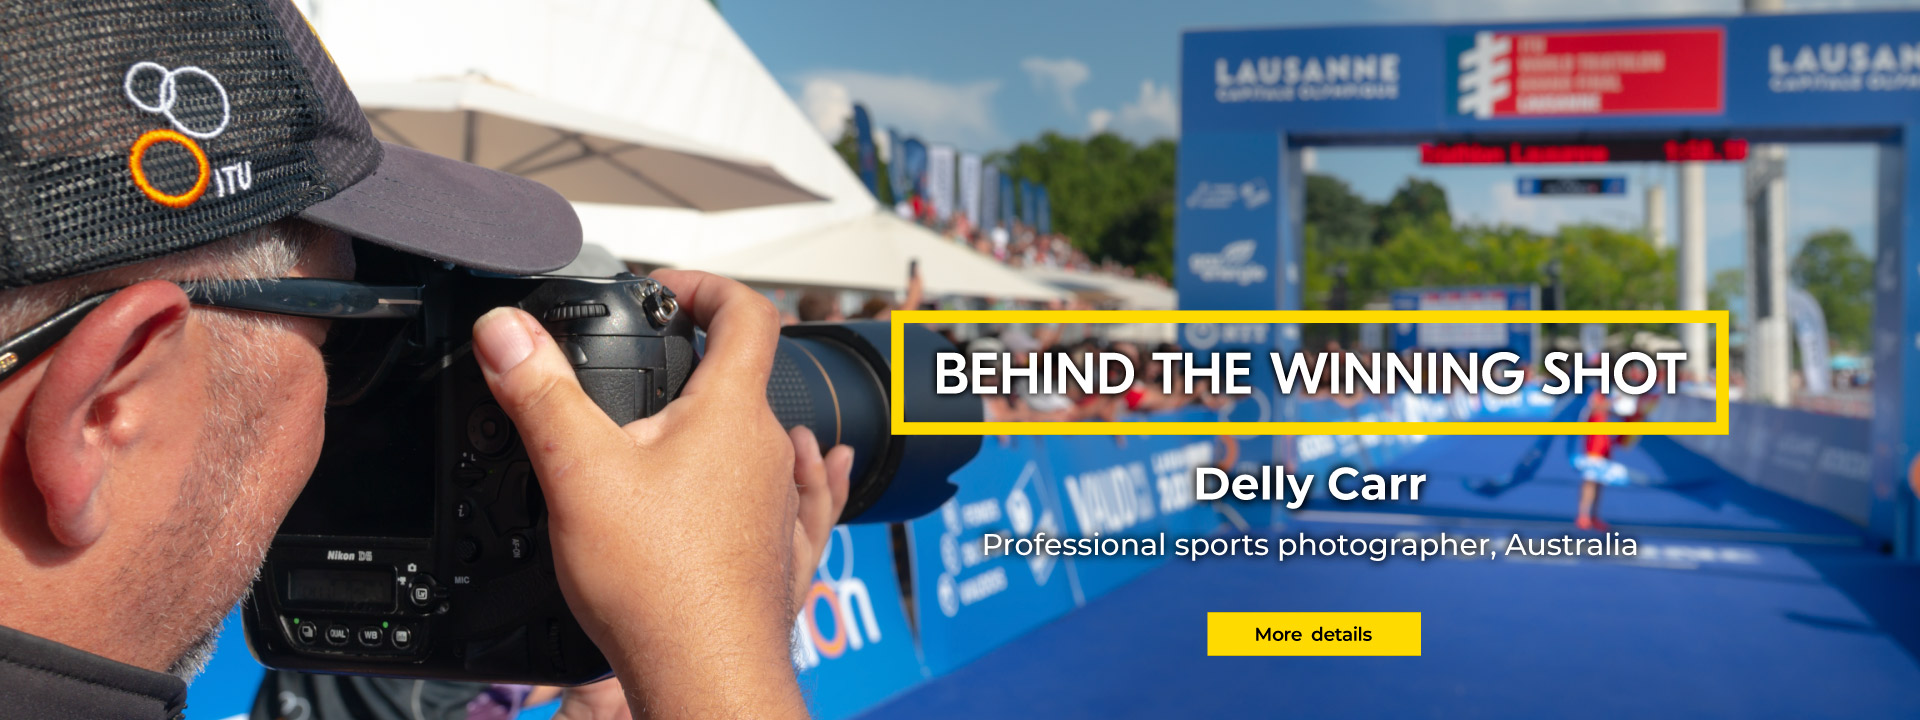 Behind the Winning Shot | Delly Carr